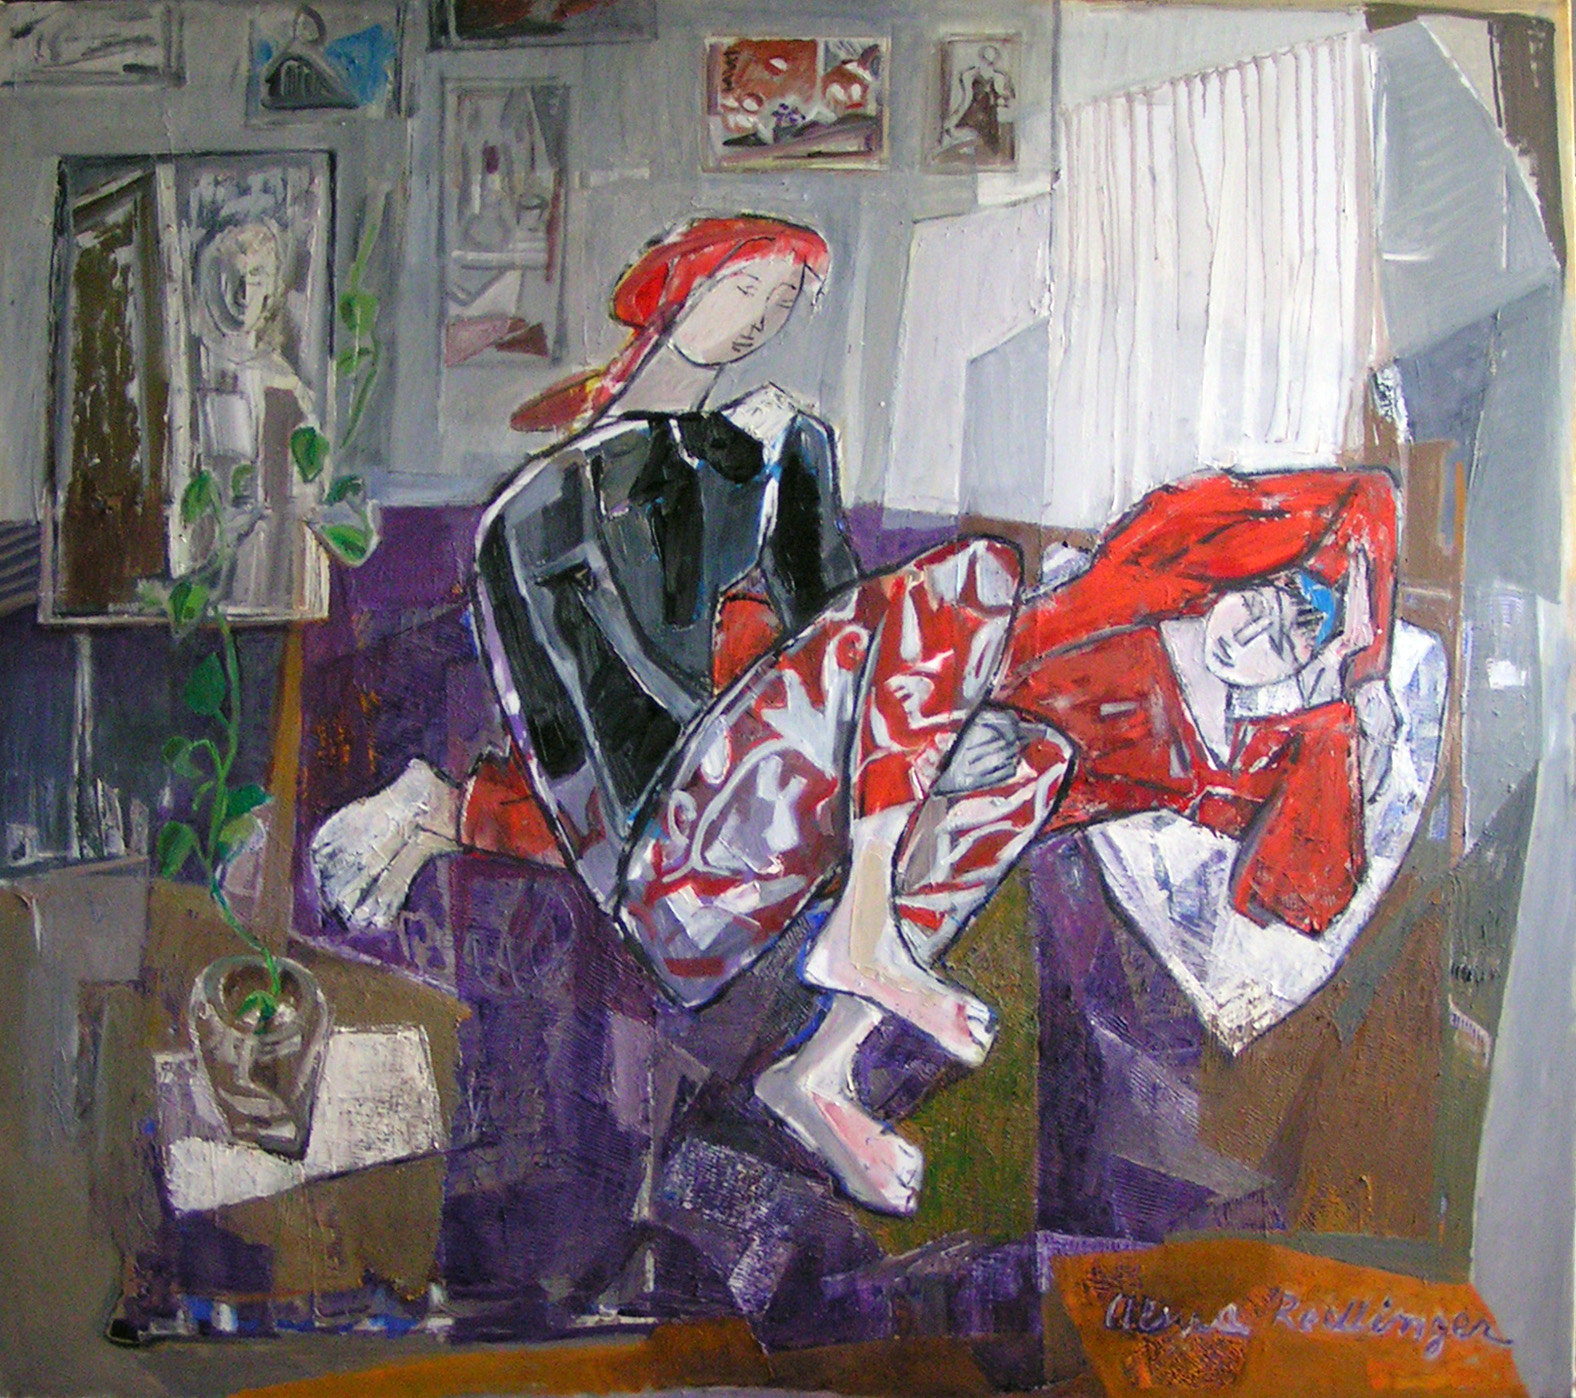 Friends in the studio, 2011, oil/canvas